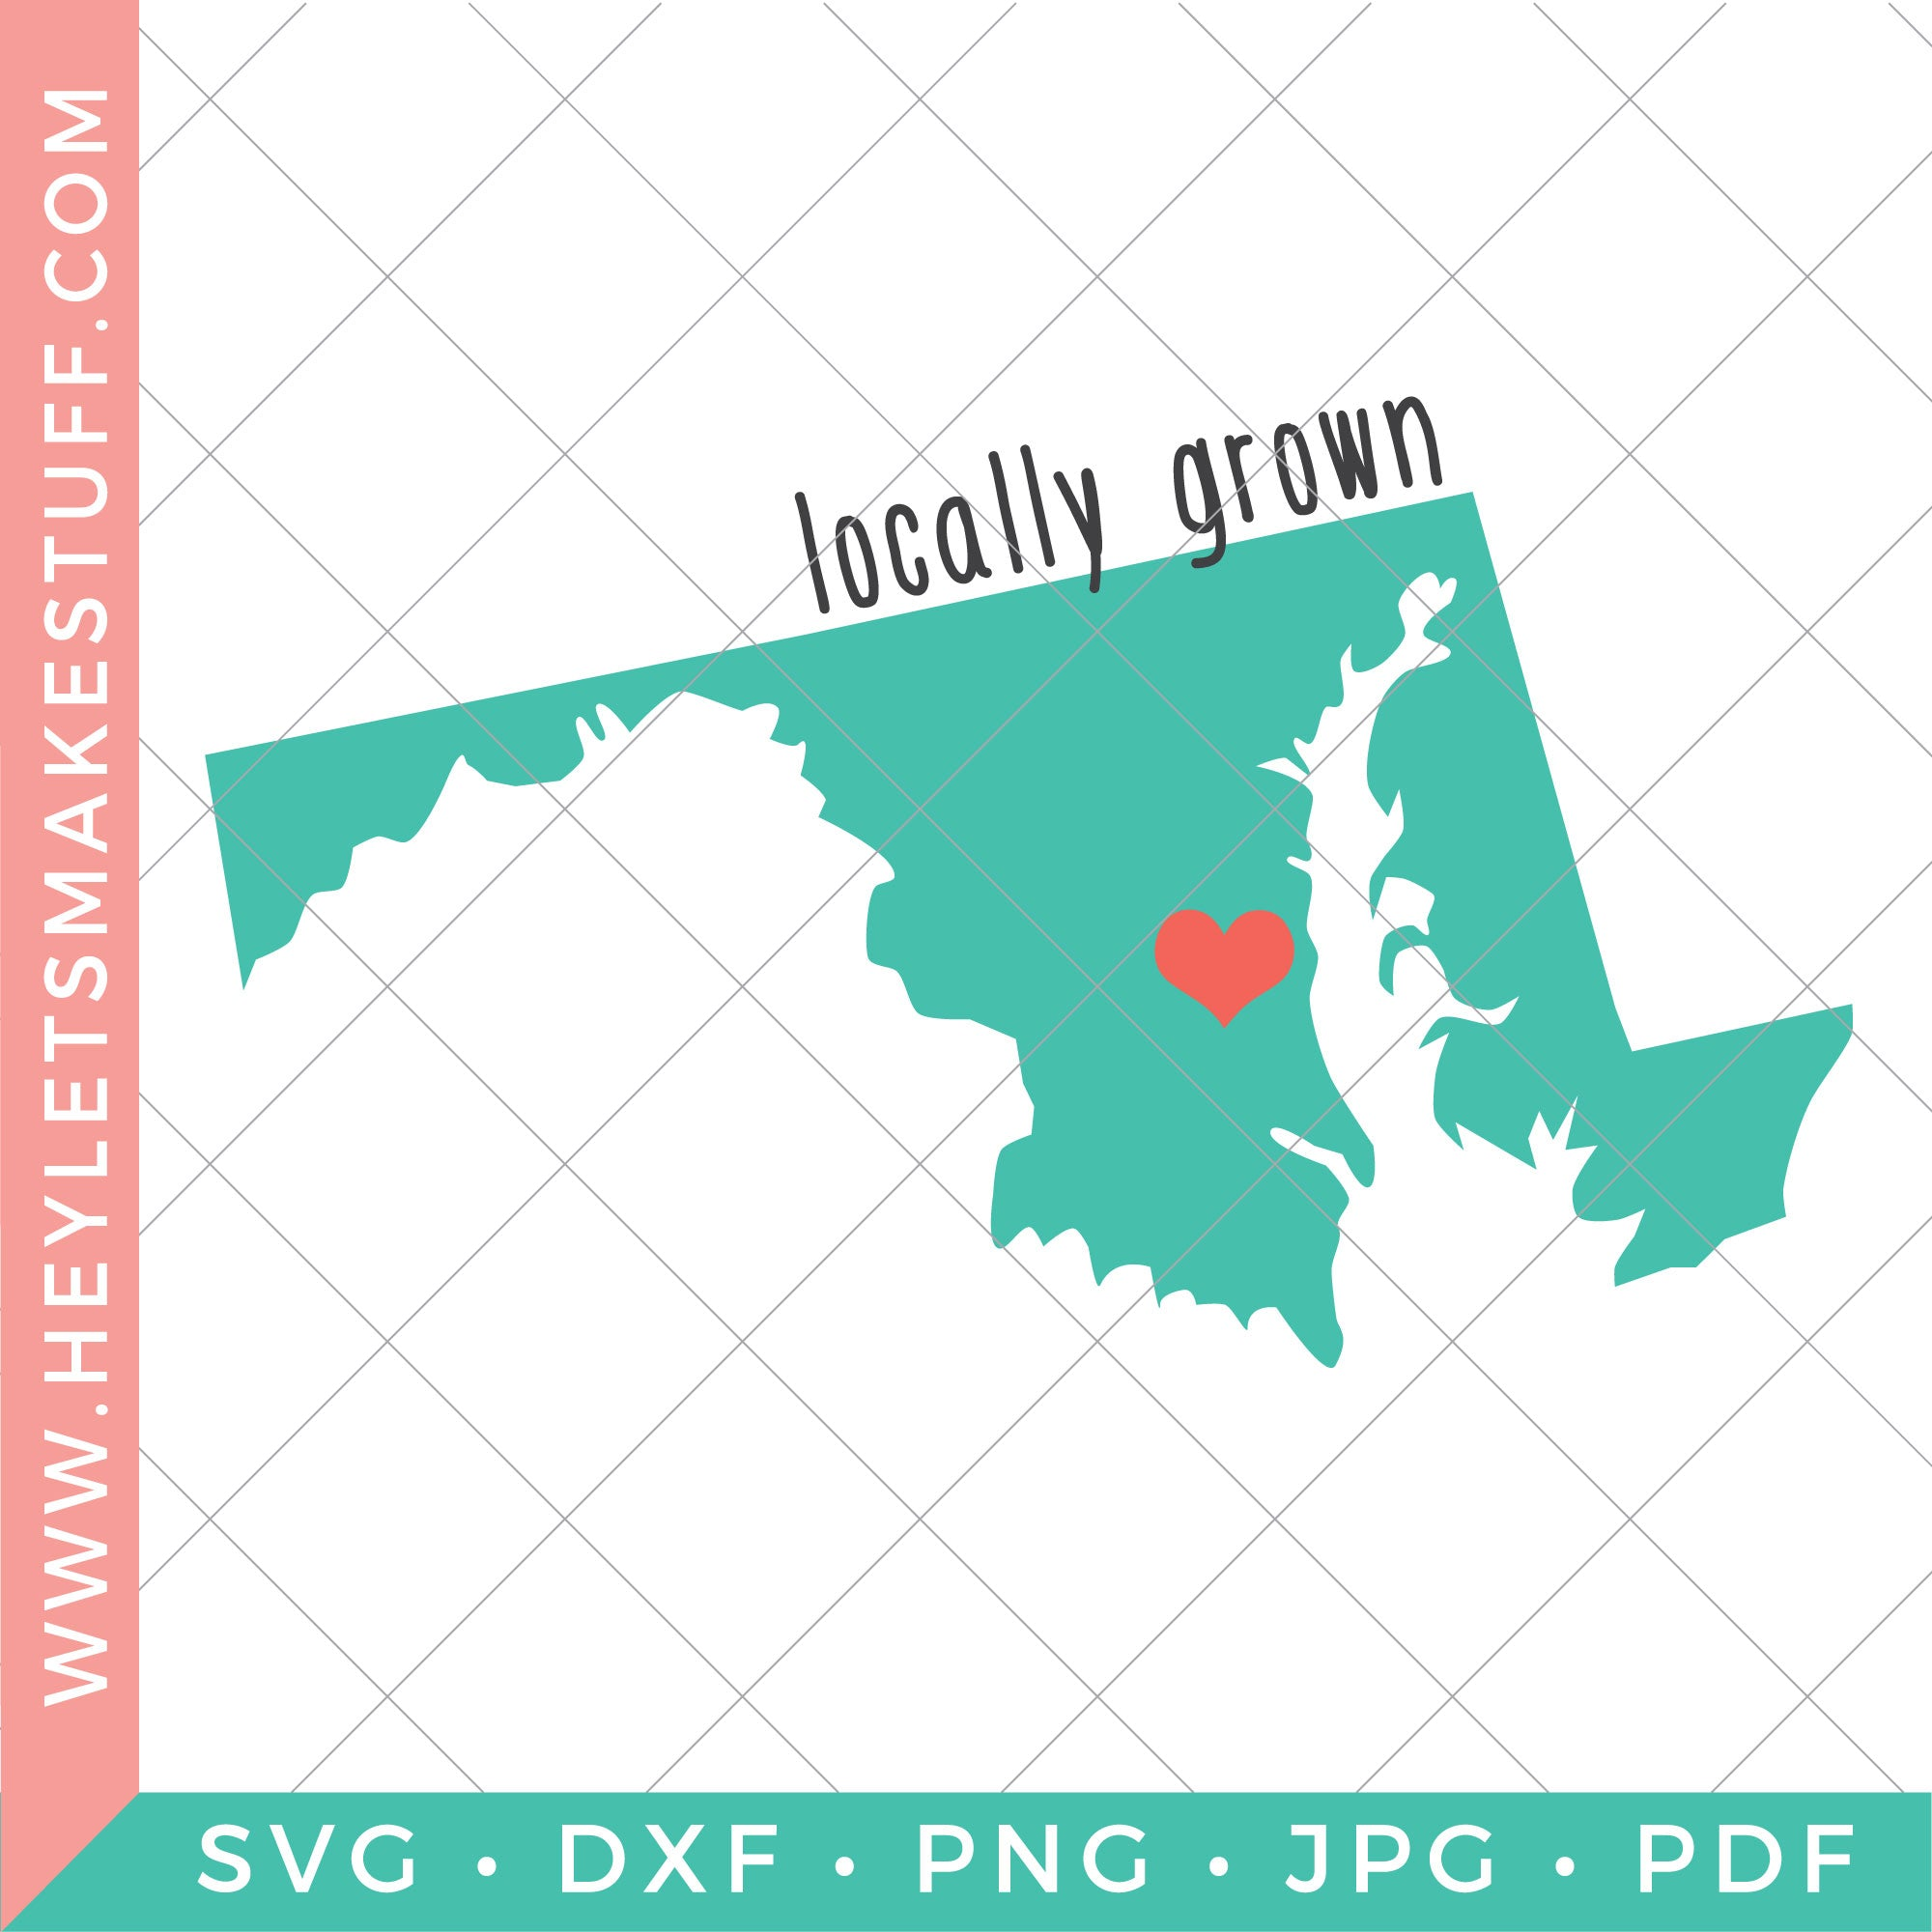 Locally Grown - Maryland